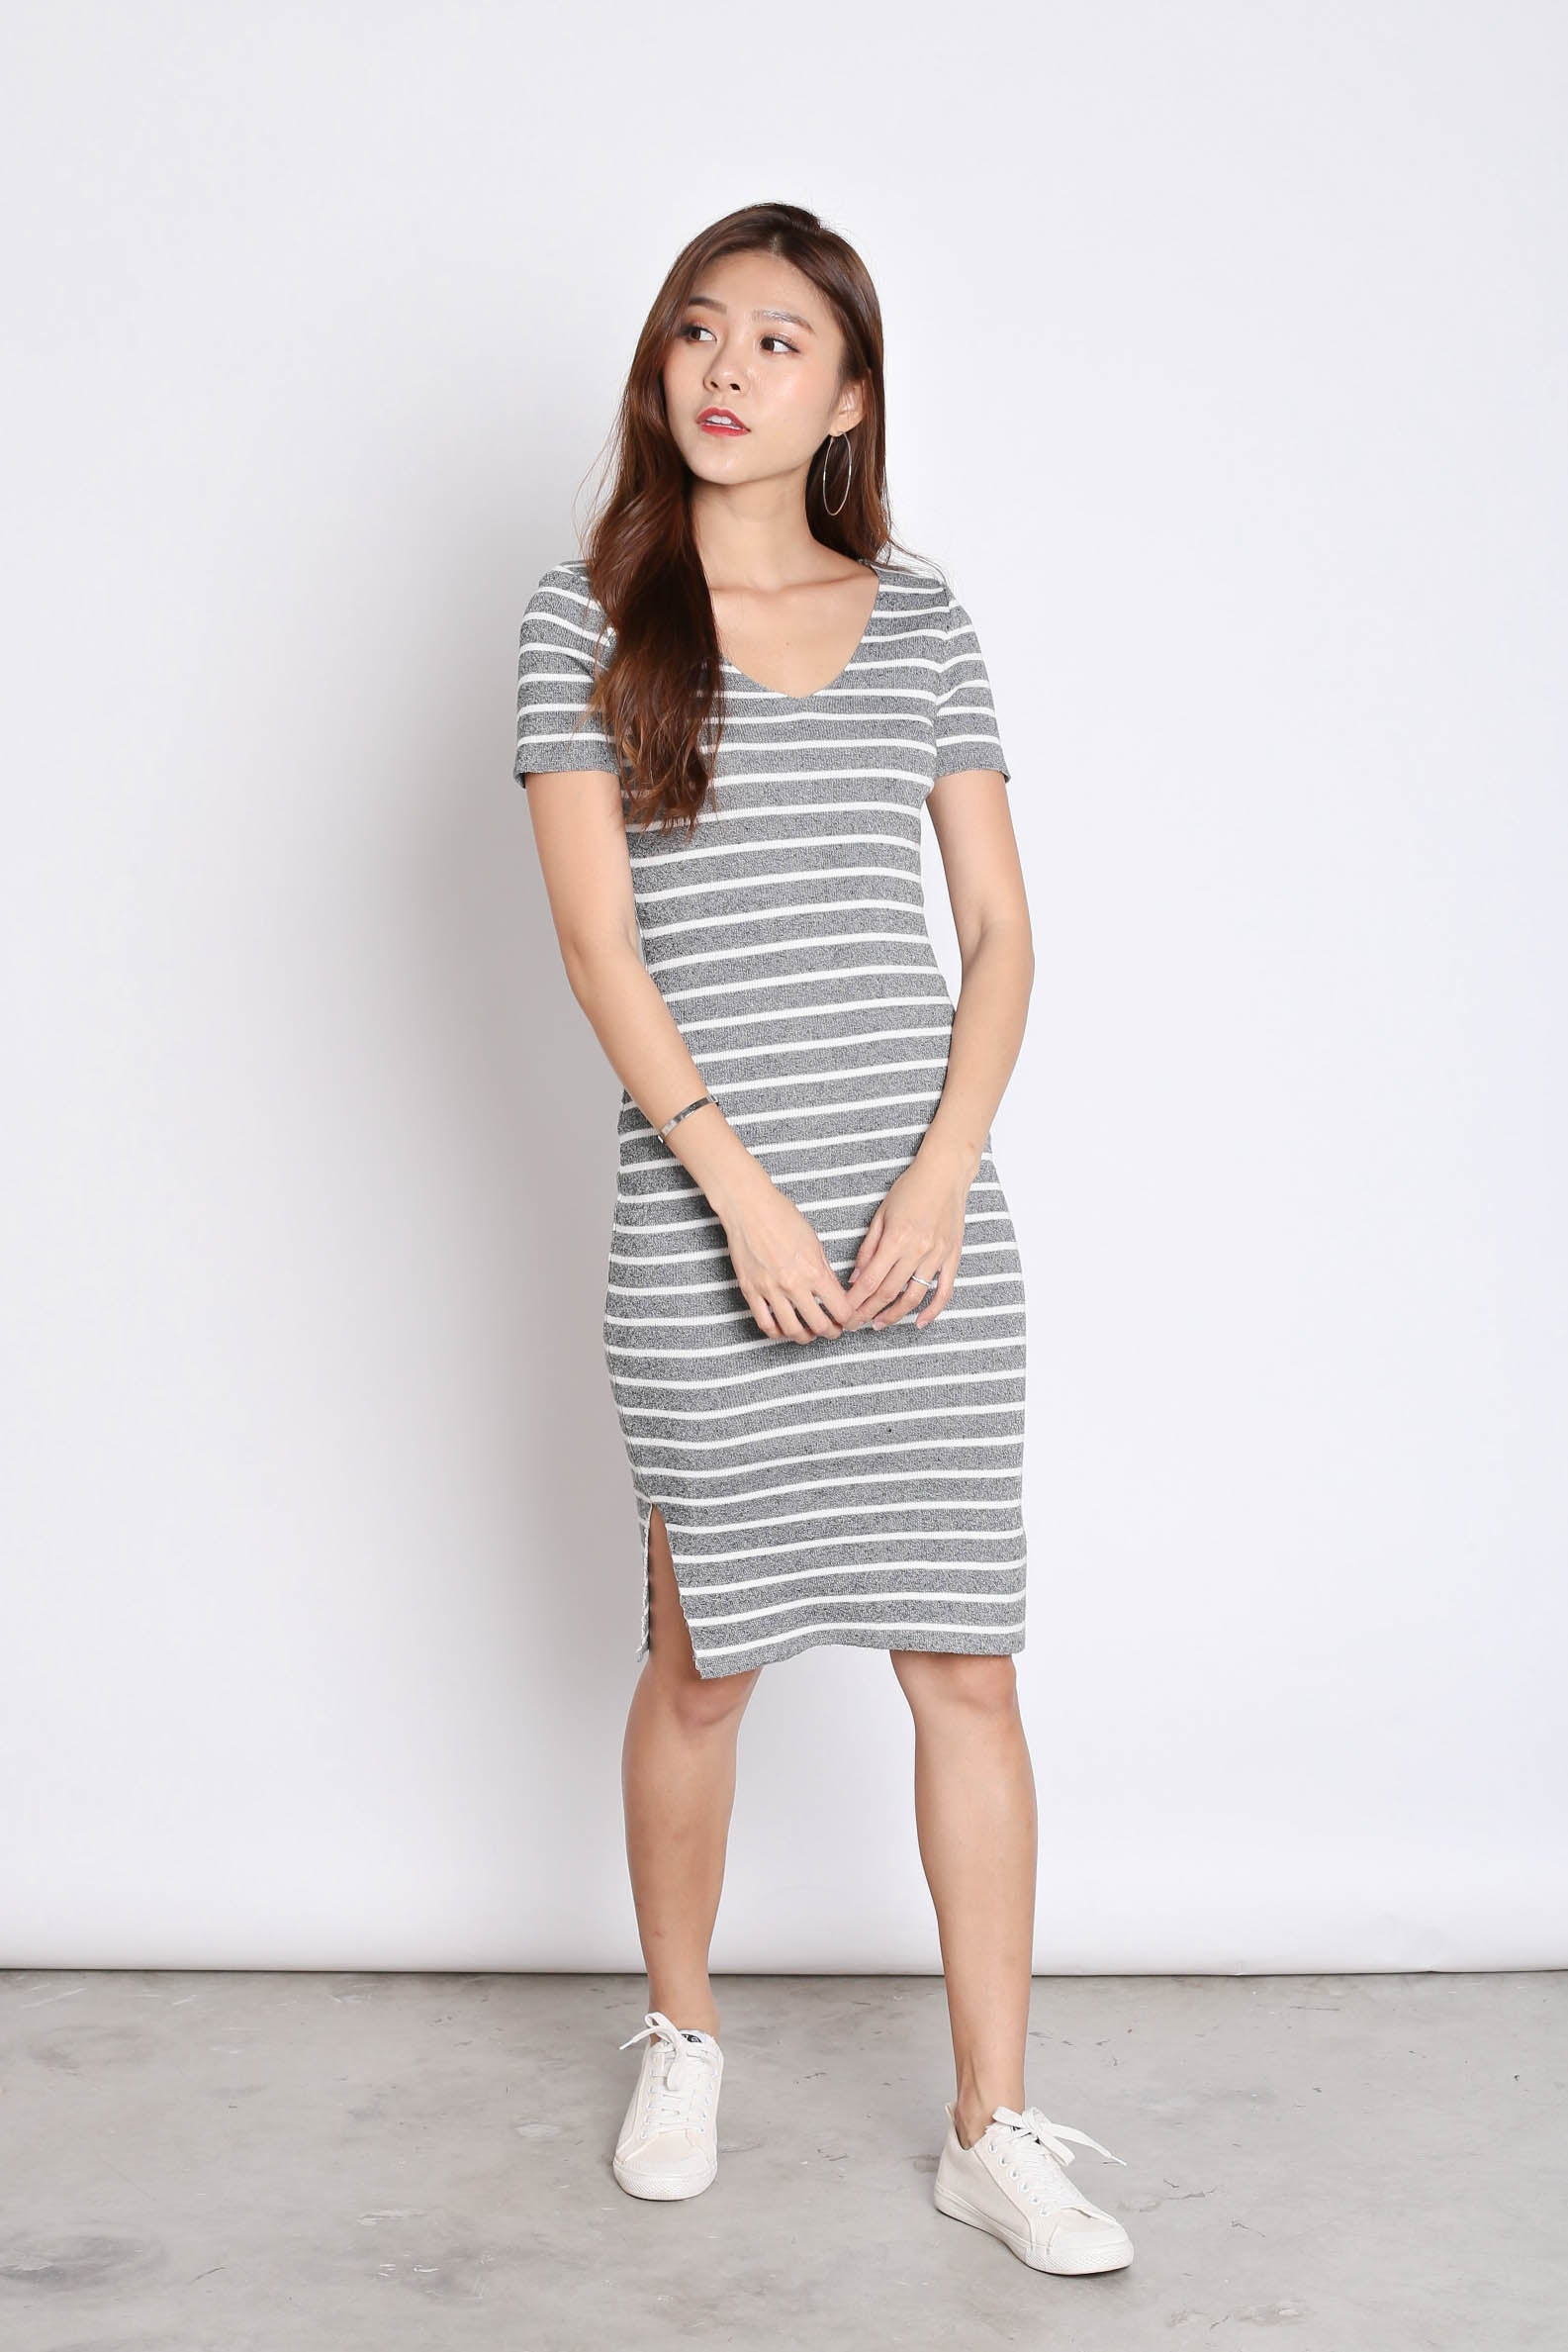 TABBY NAUTICAL KNIT DRESS IN ASH GREY